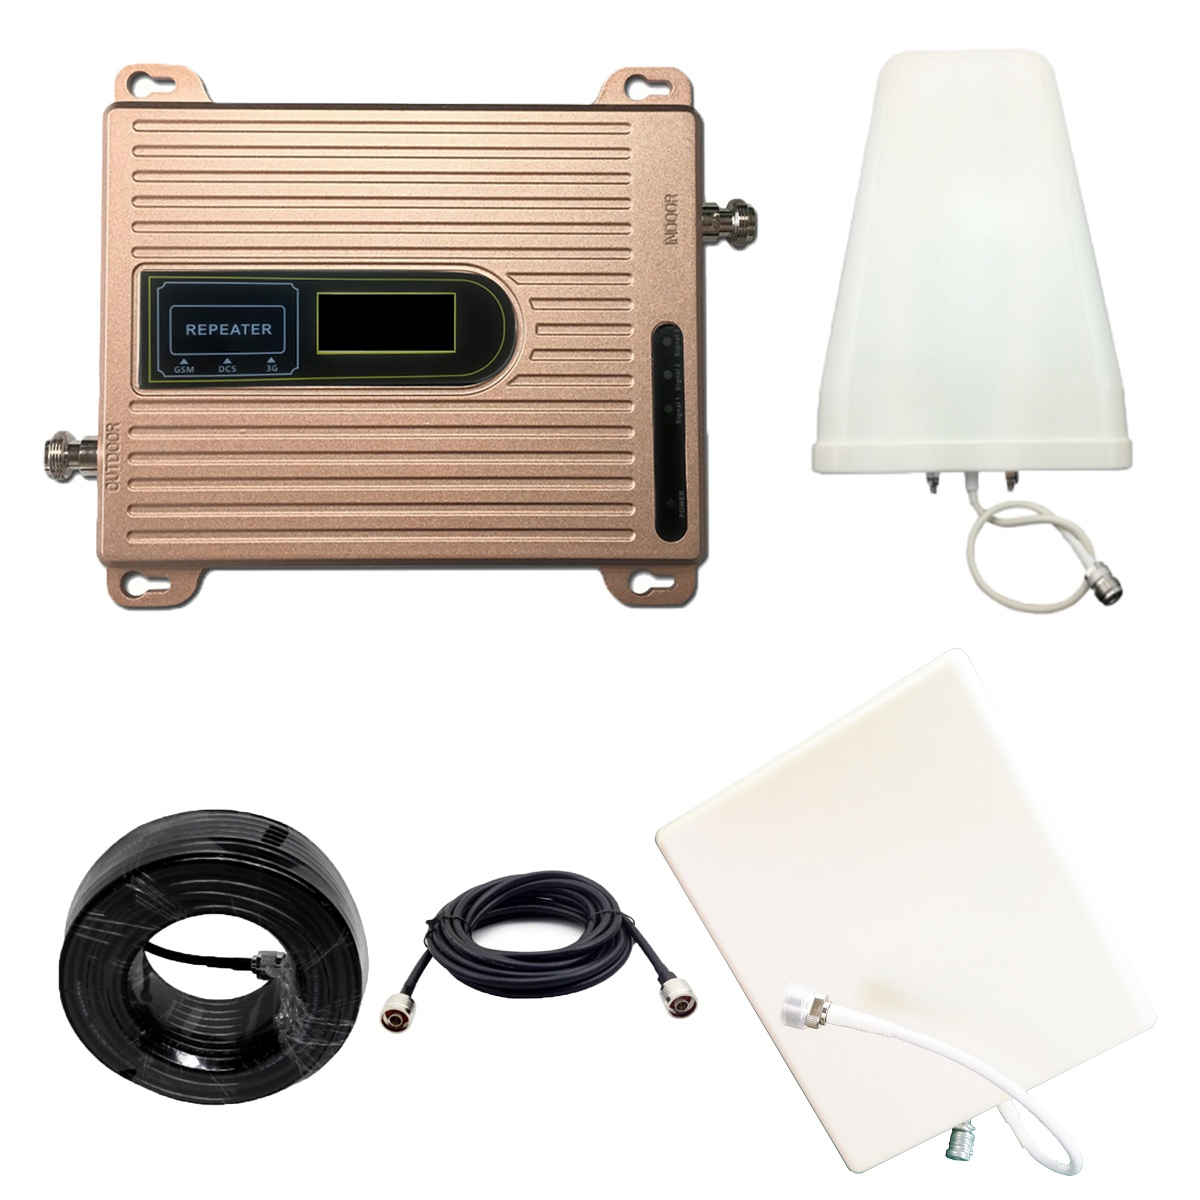 900 1800 2100 MHZ 2G 3G 4G Signal Booster GSM Repeater Amplifier 4G Mobile Phone Tir Band Cell Phone Booster WCDMA GCS